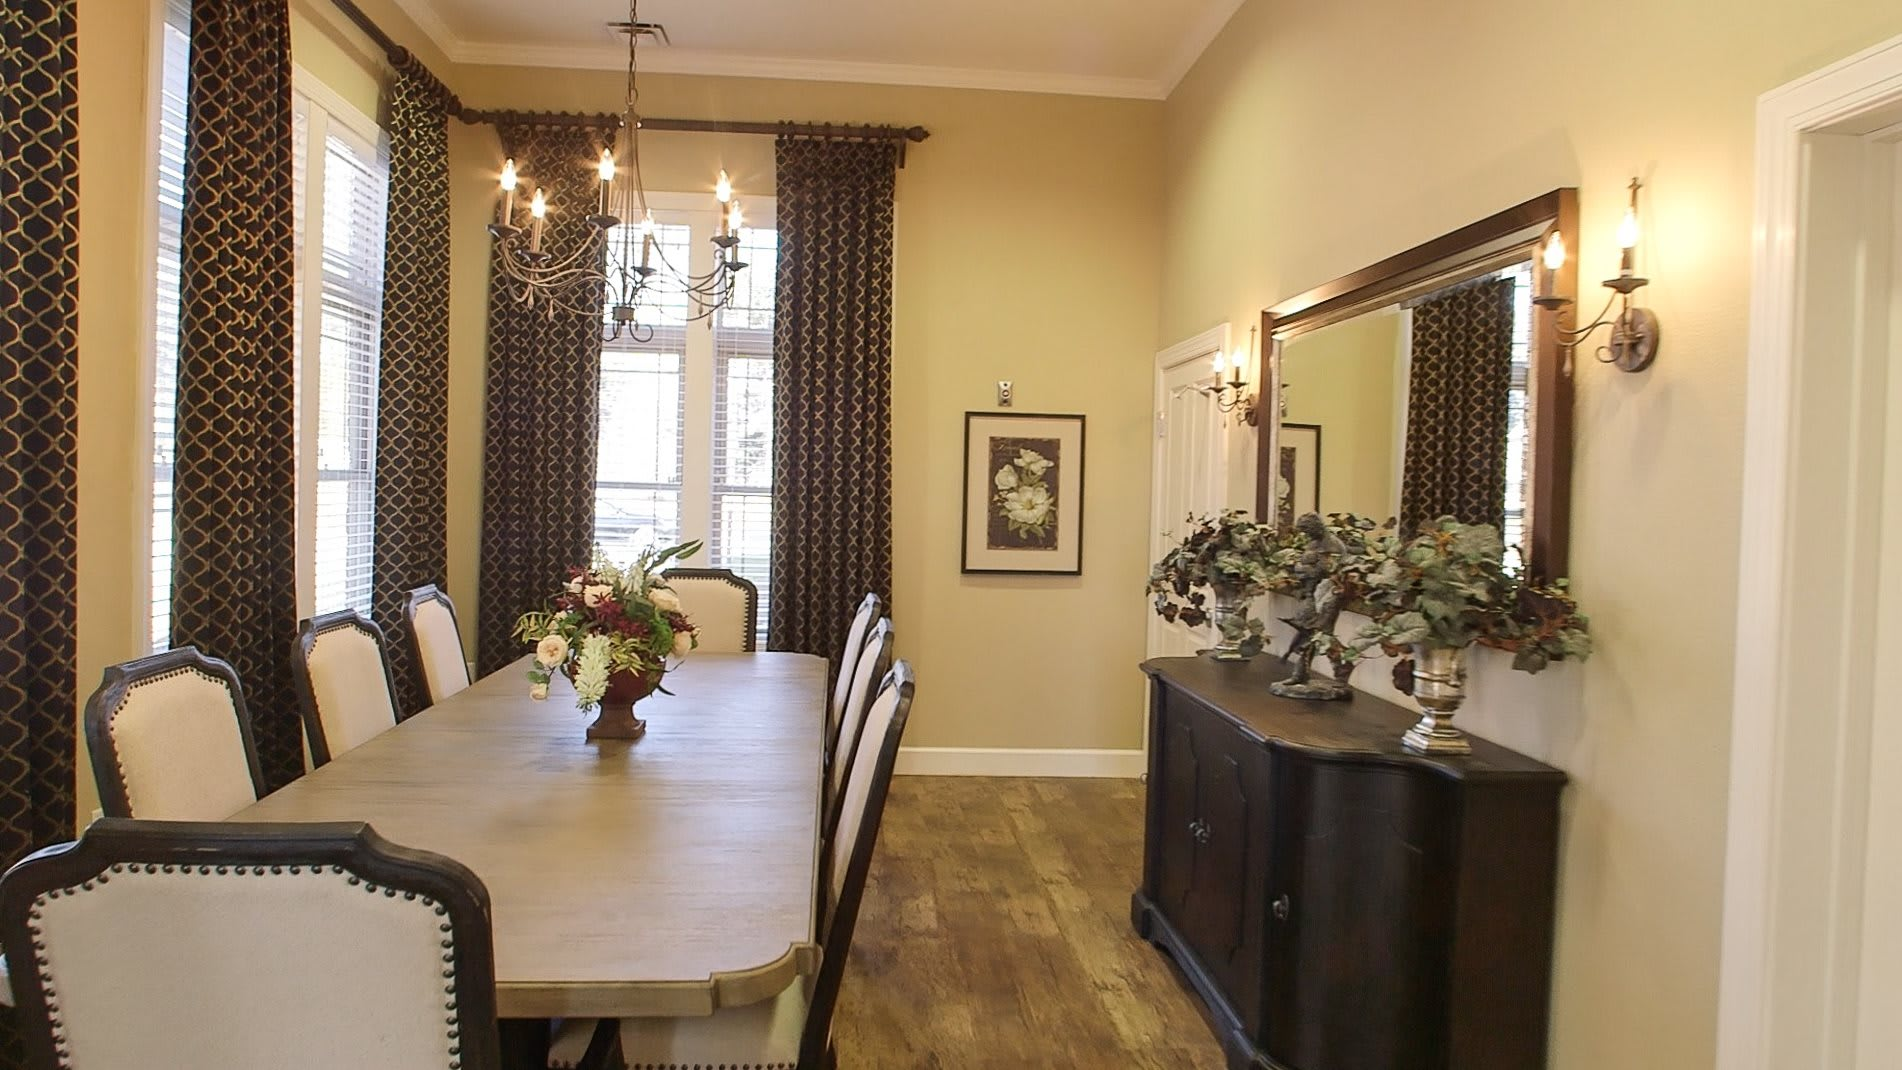 Photo 1 of Quail Ridge Assisted Living and Memory Care